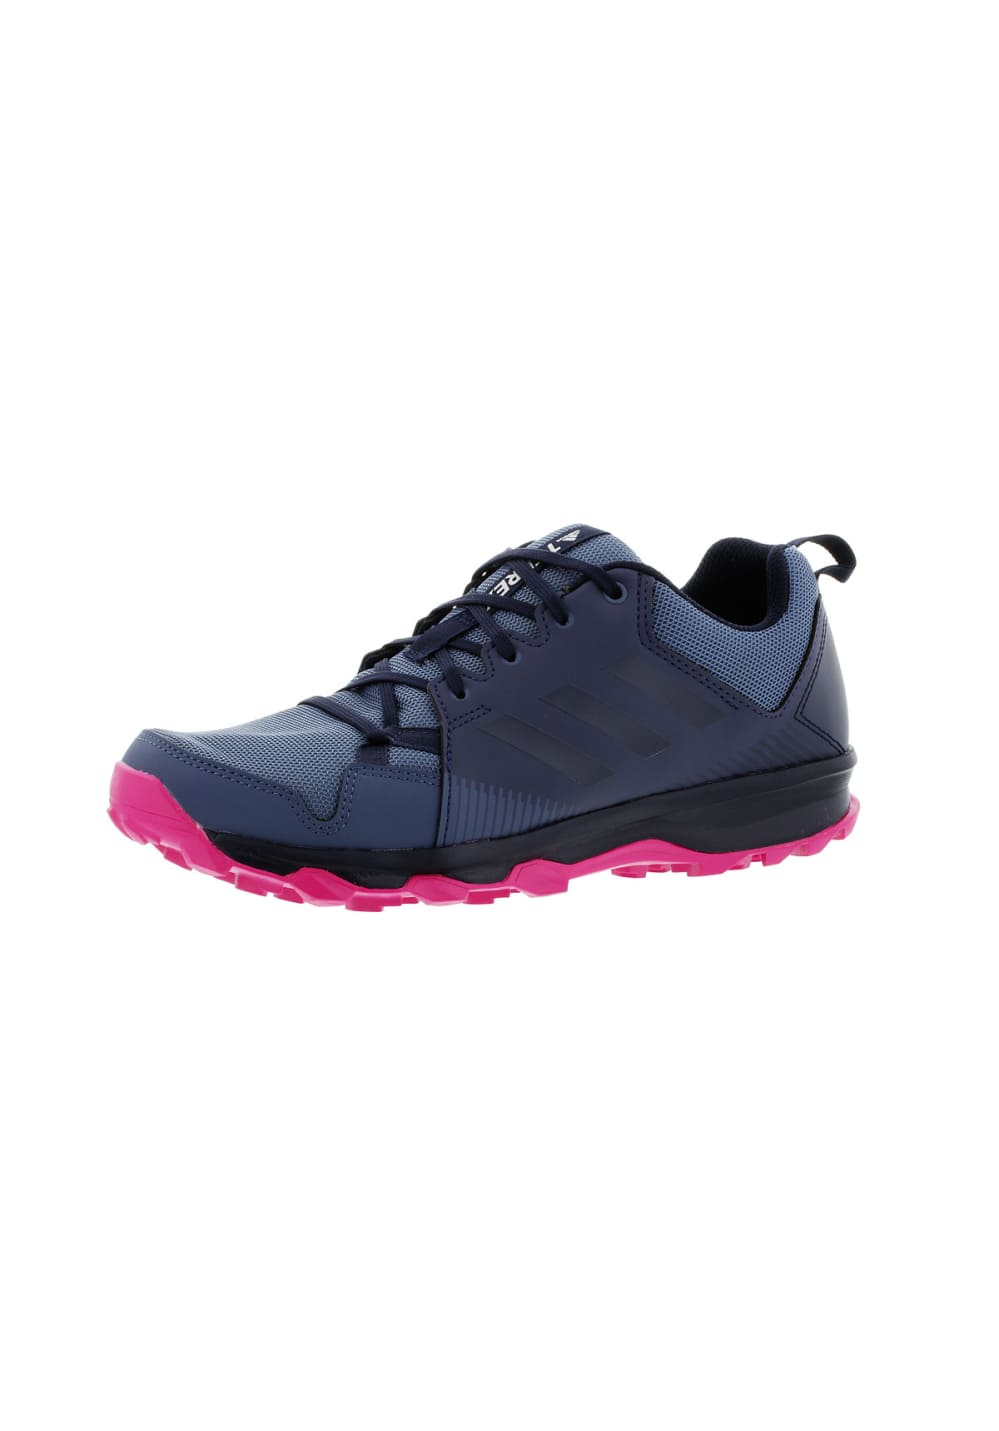 af4e3e53c7f04d ... adidas TERREX Terrex Tracerocker - Outdoor shoes for Women - Blue. Back  to Overview. 1  2  3  4  5. Previous